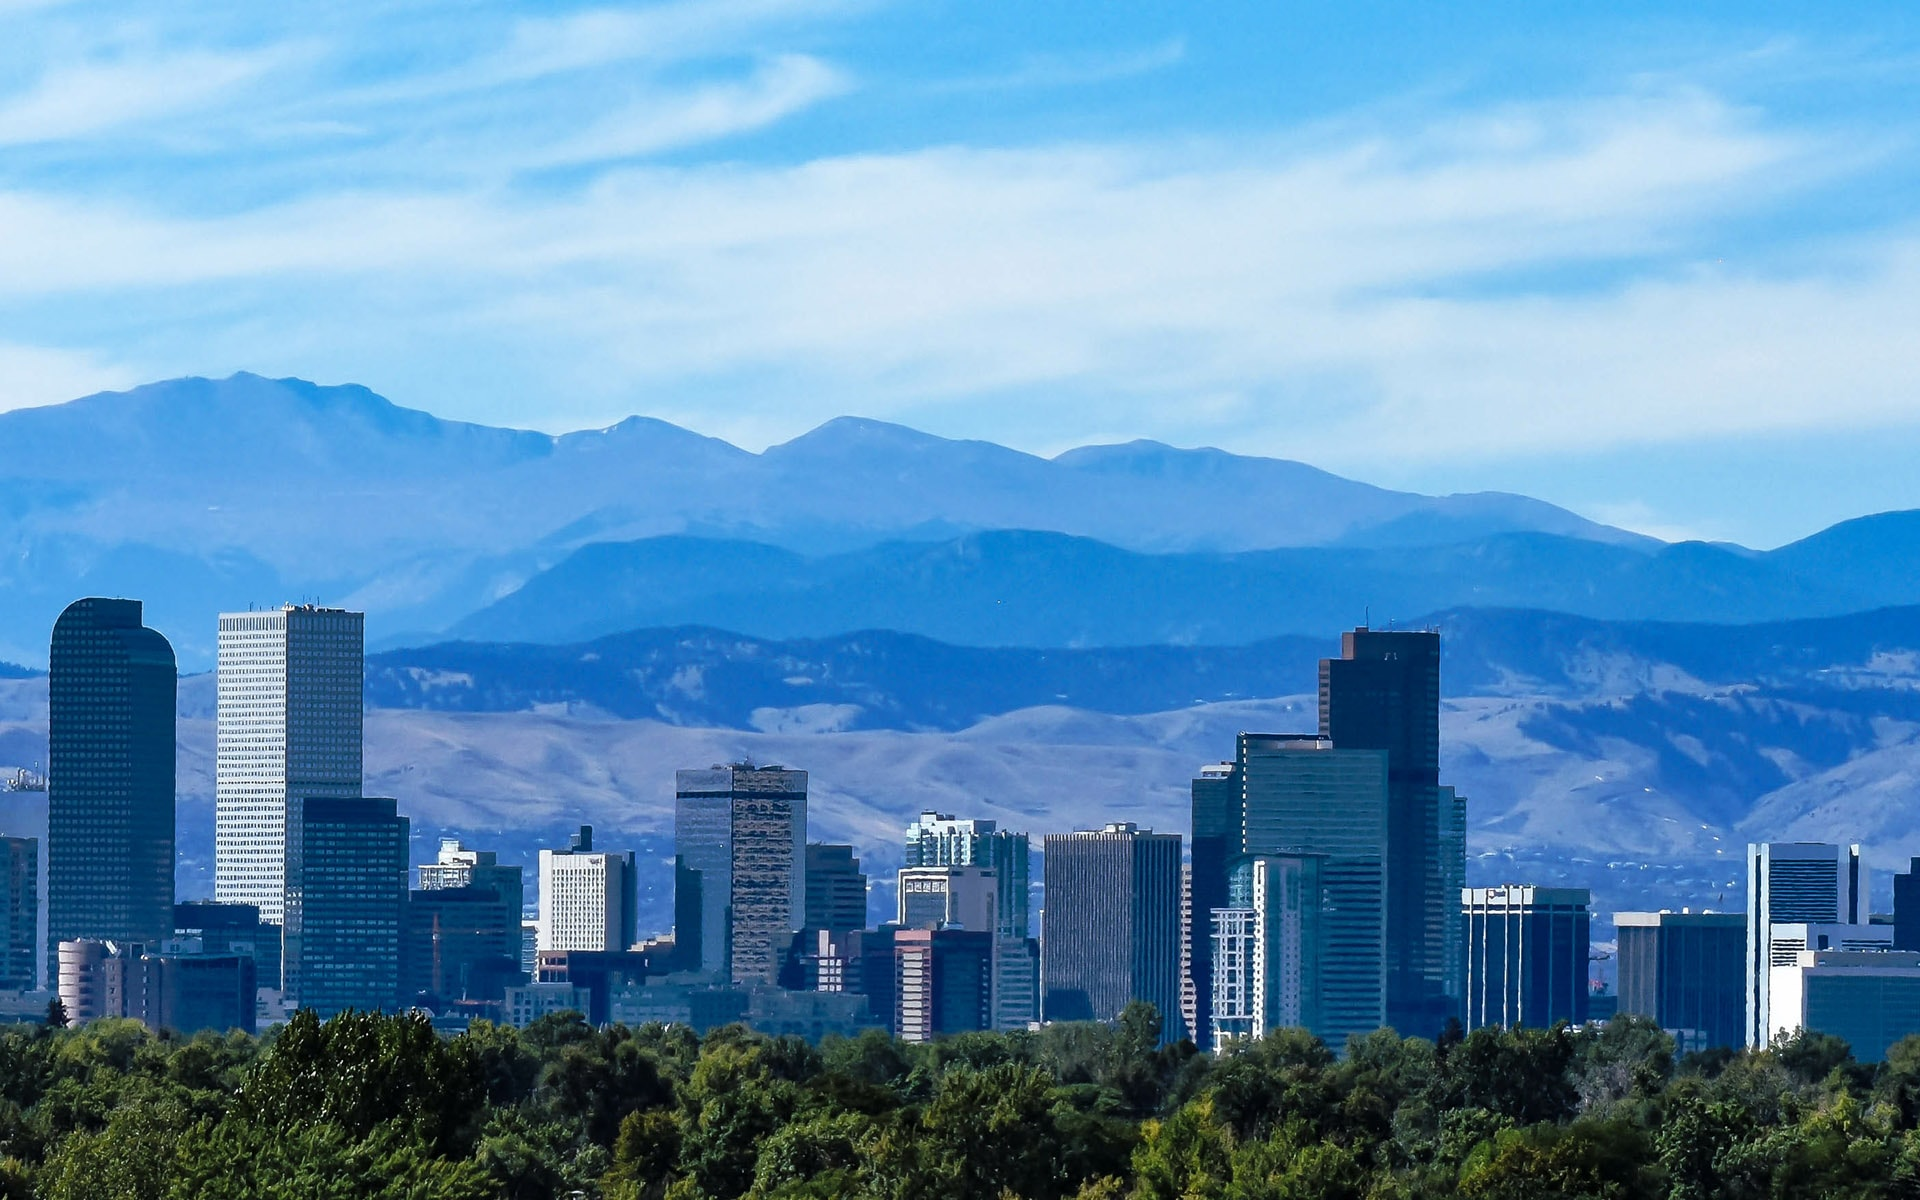 Aerial view of the Denver skyline with mountains and blue sky in the background